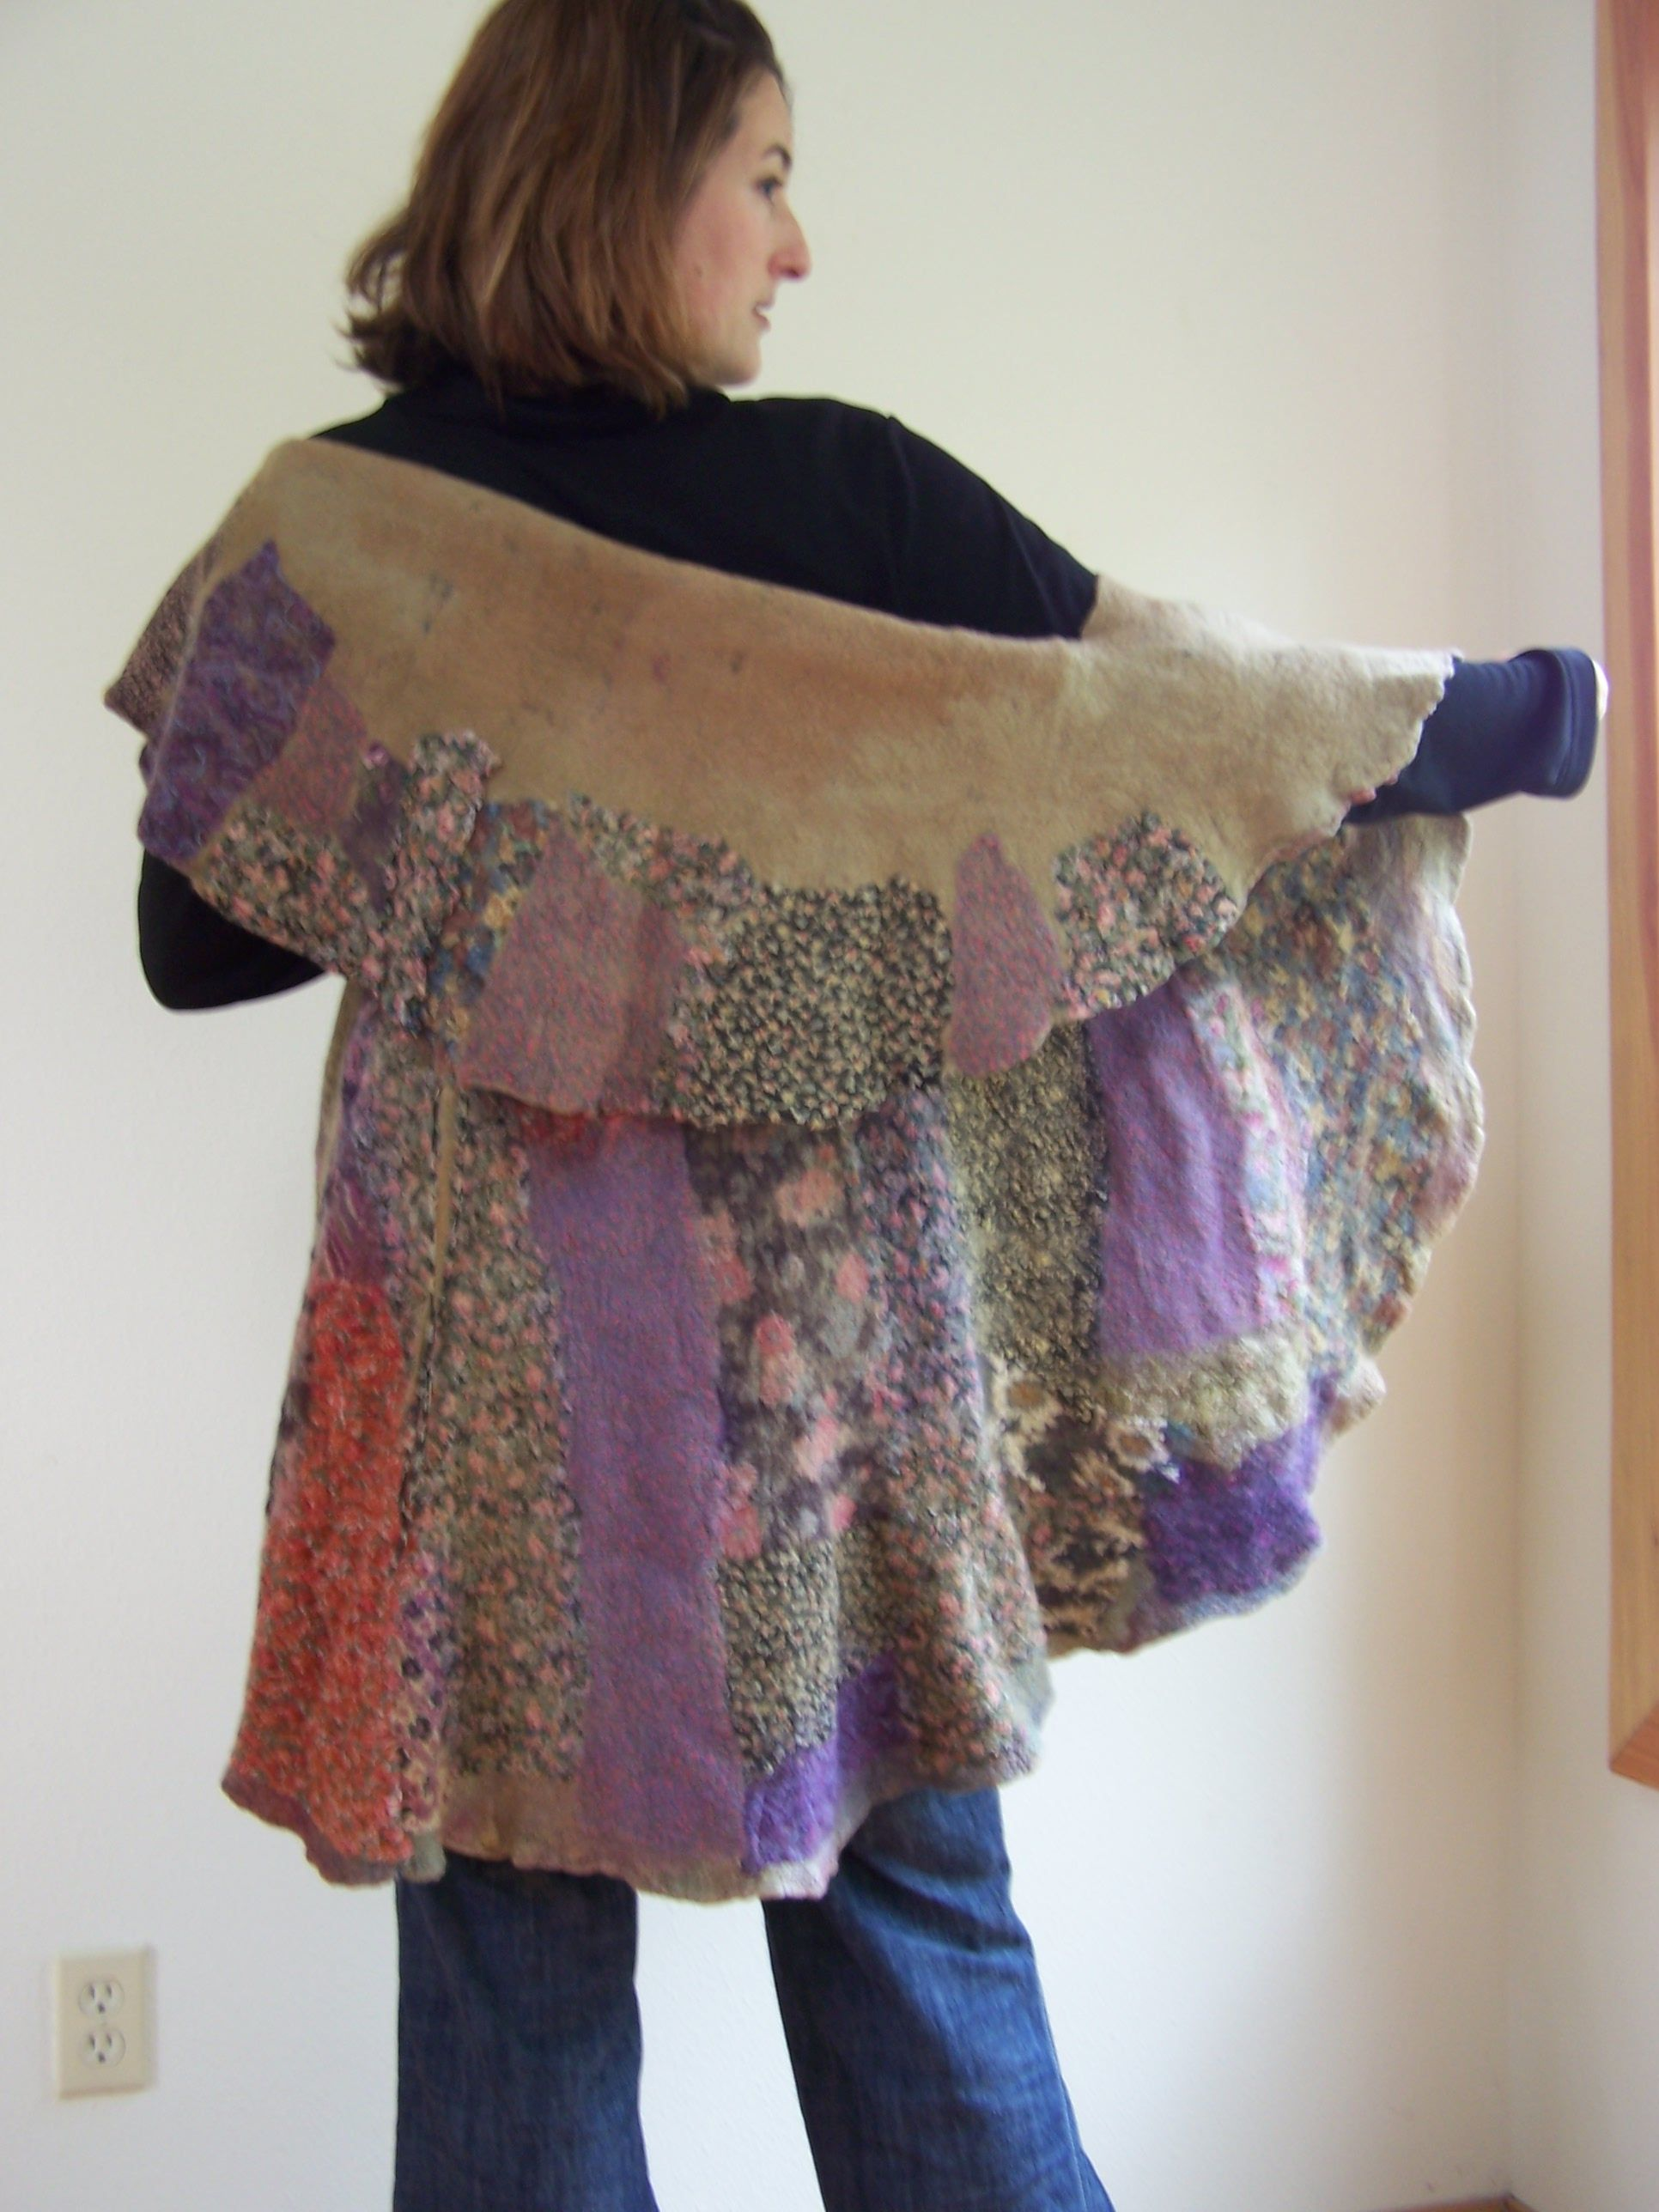 Felted vest with cotton bulbs design